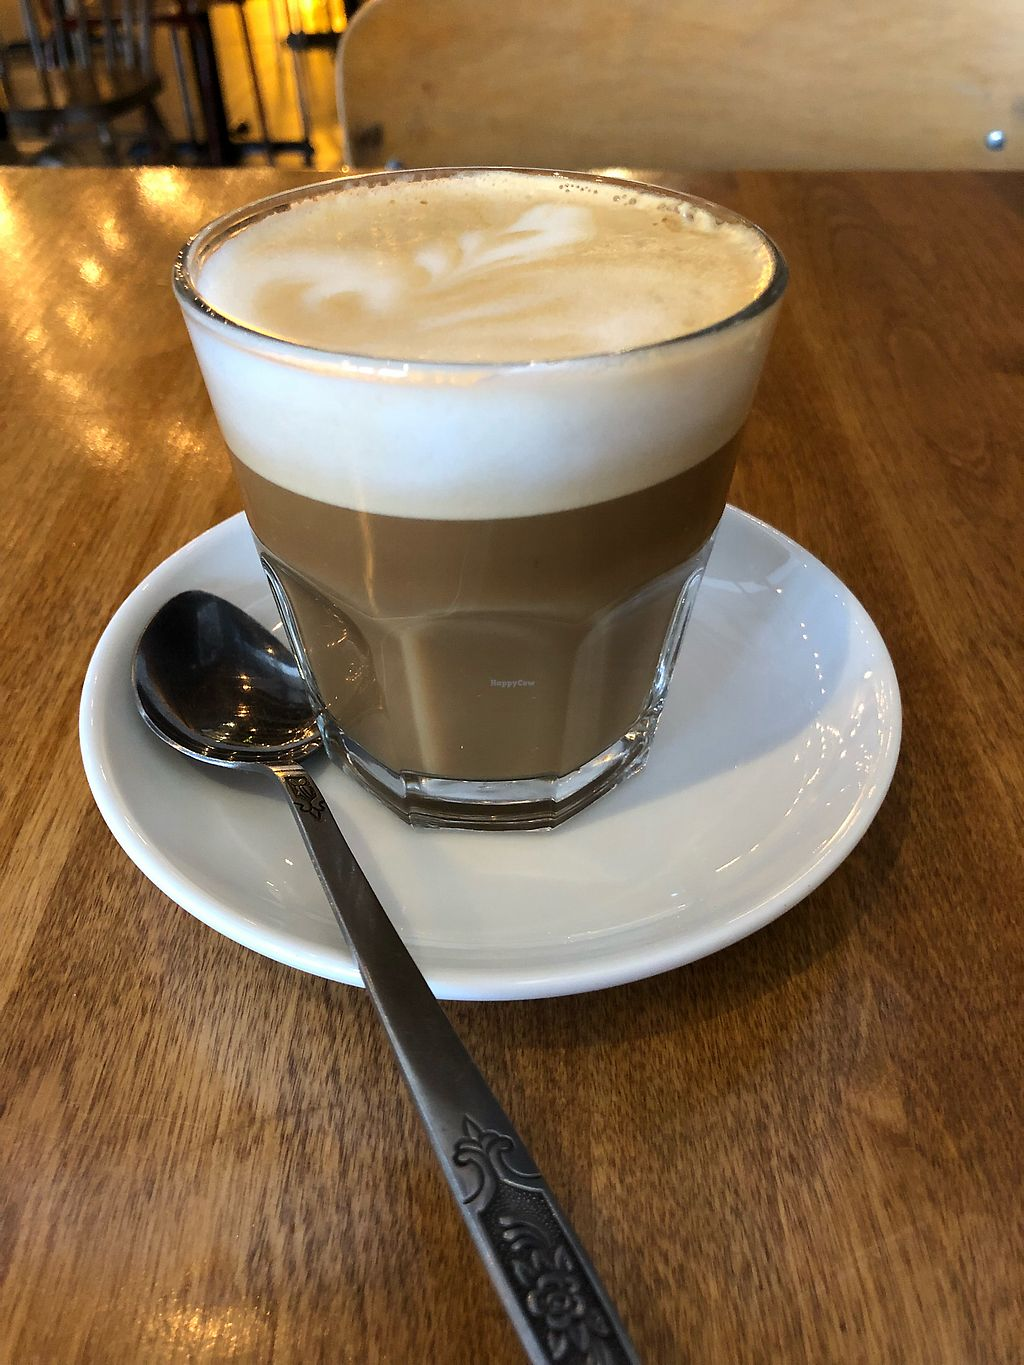 """Photo of Antidote Bouffe Vegane  by <a href=""""/members/profile/jakeadamlee"""">jakeadamlee</a> <br/>Cortado with soy milk <br/> December 13, 2017  - <a href='/contact/abuse/image/52254/335254'>Report</a>"""